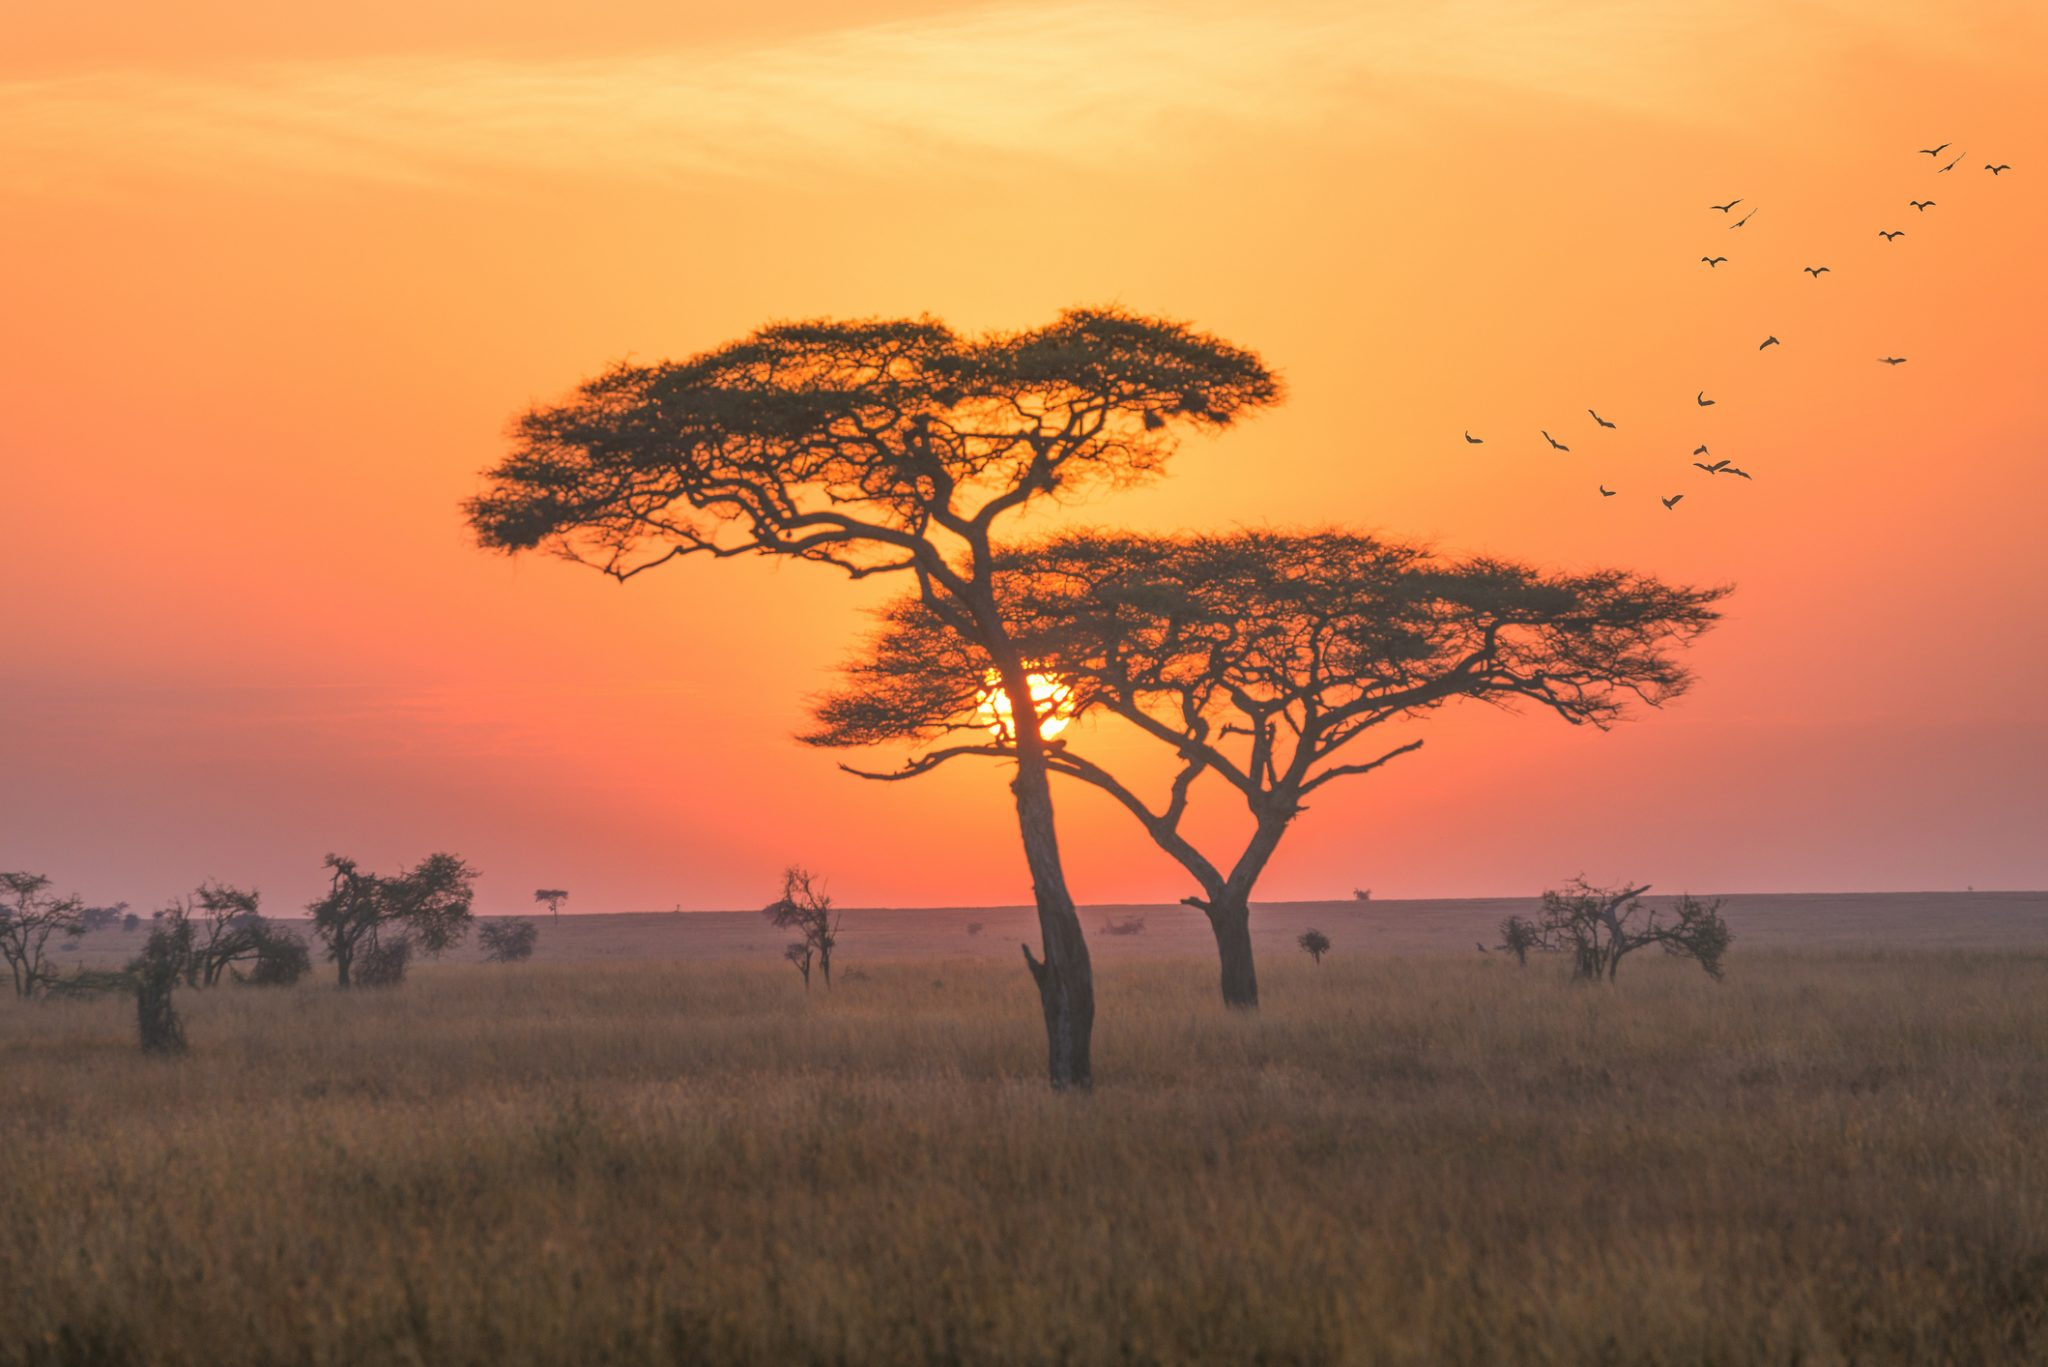 A landscape in the Serengeti national park, early morning with sunrise scence.